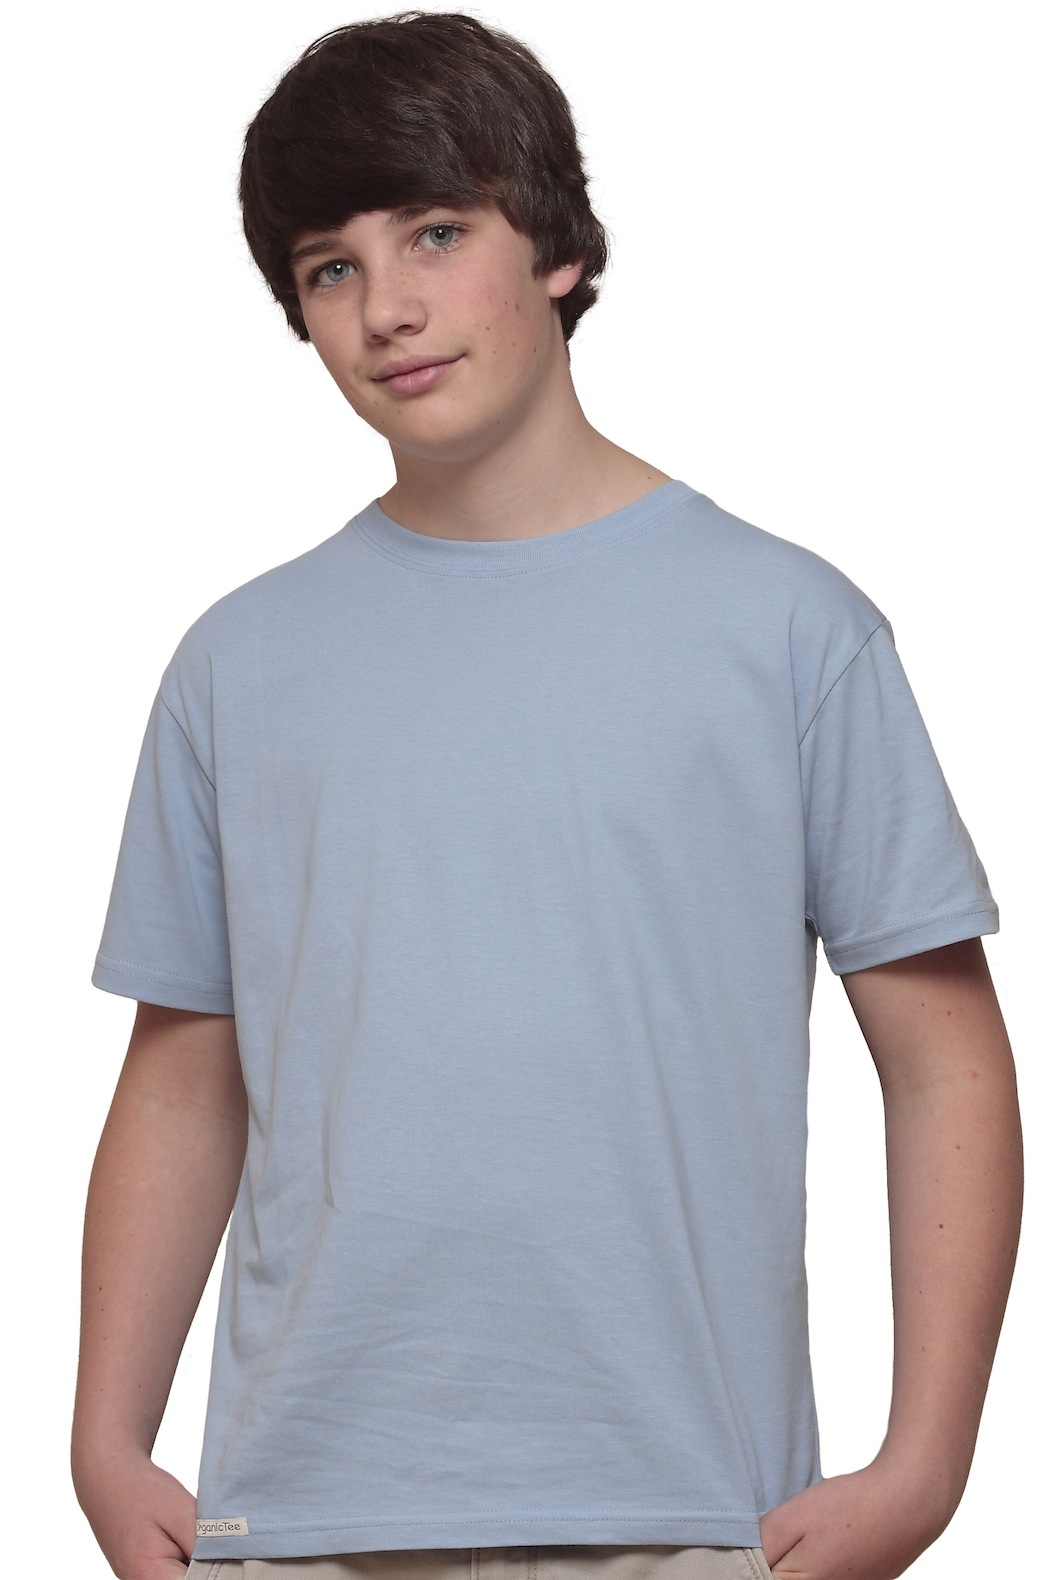 Palomar Youth S/S OrganicTee- Sky Blue